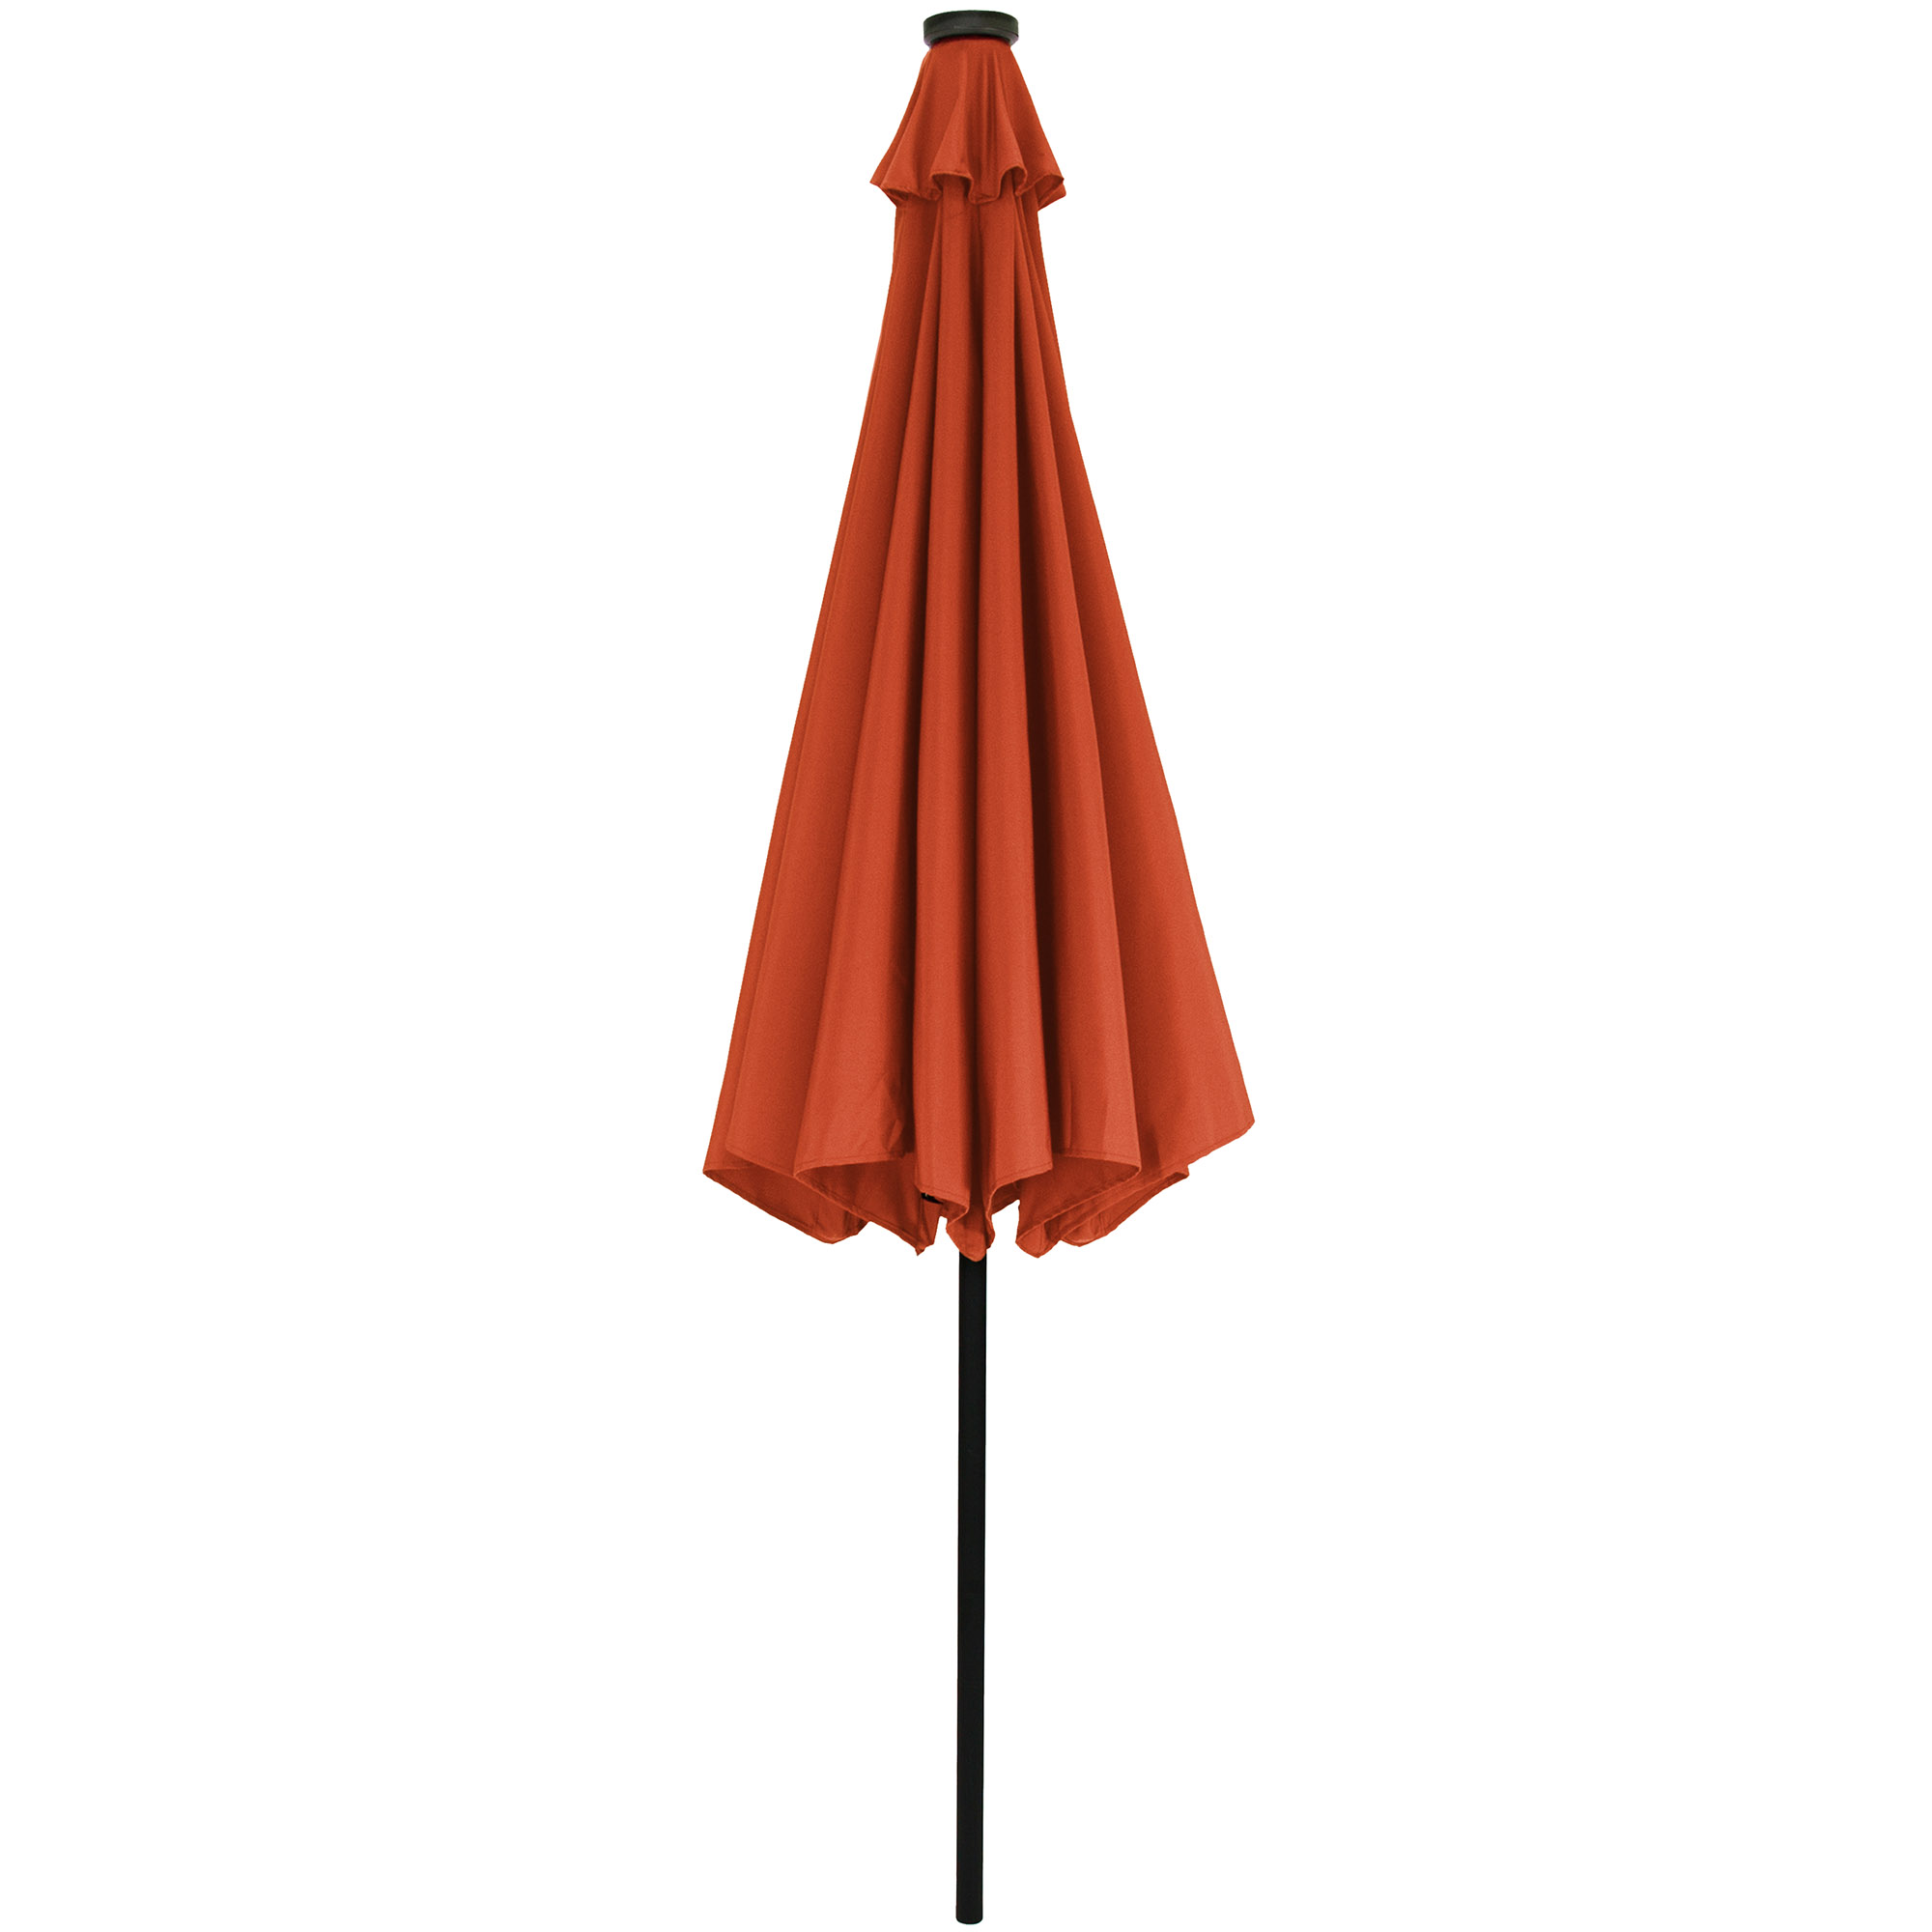 BCP-10ft-Solar-LED-Lighted-Patio-Umbrella-w-Tilt-Adjustment-Fade-Resistance thumbnail 52